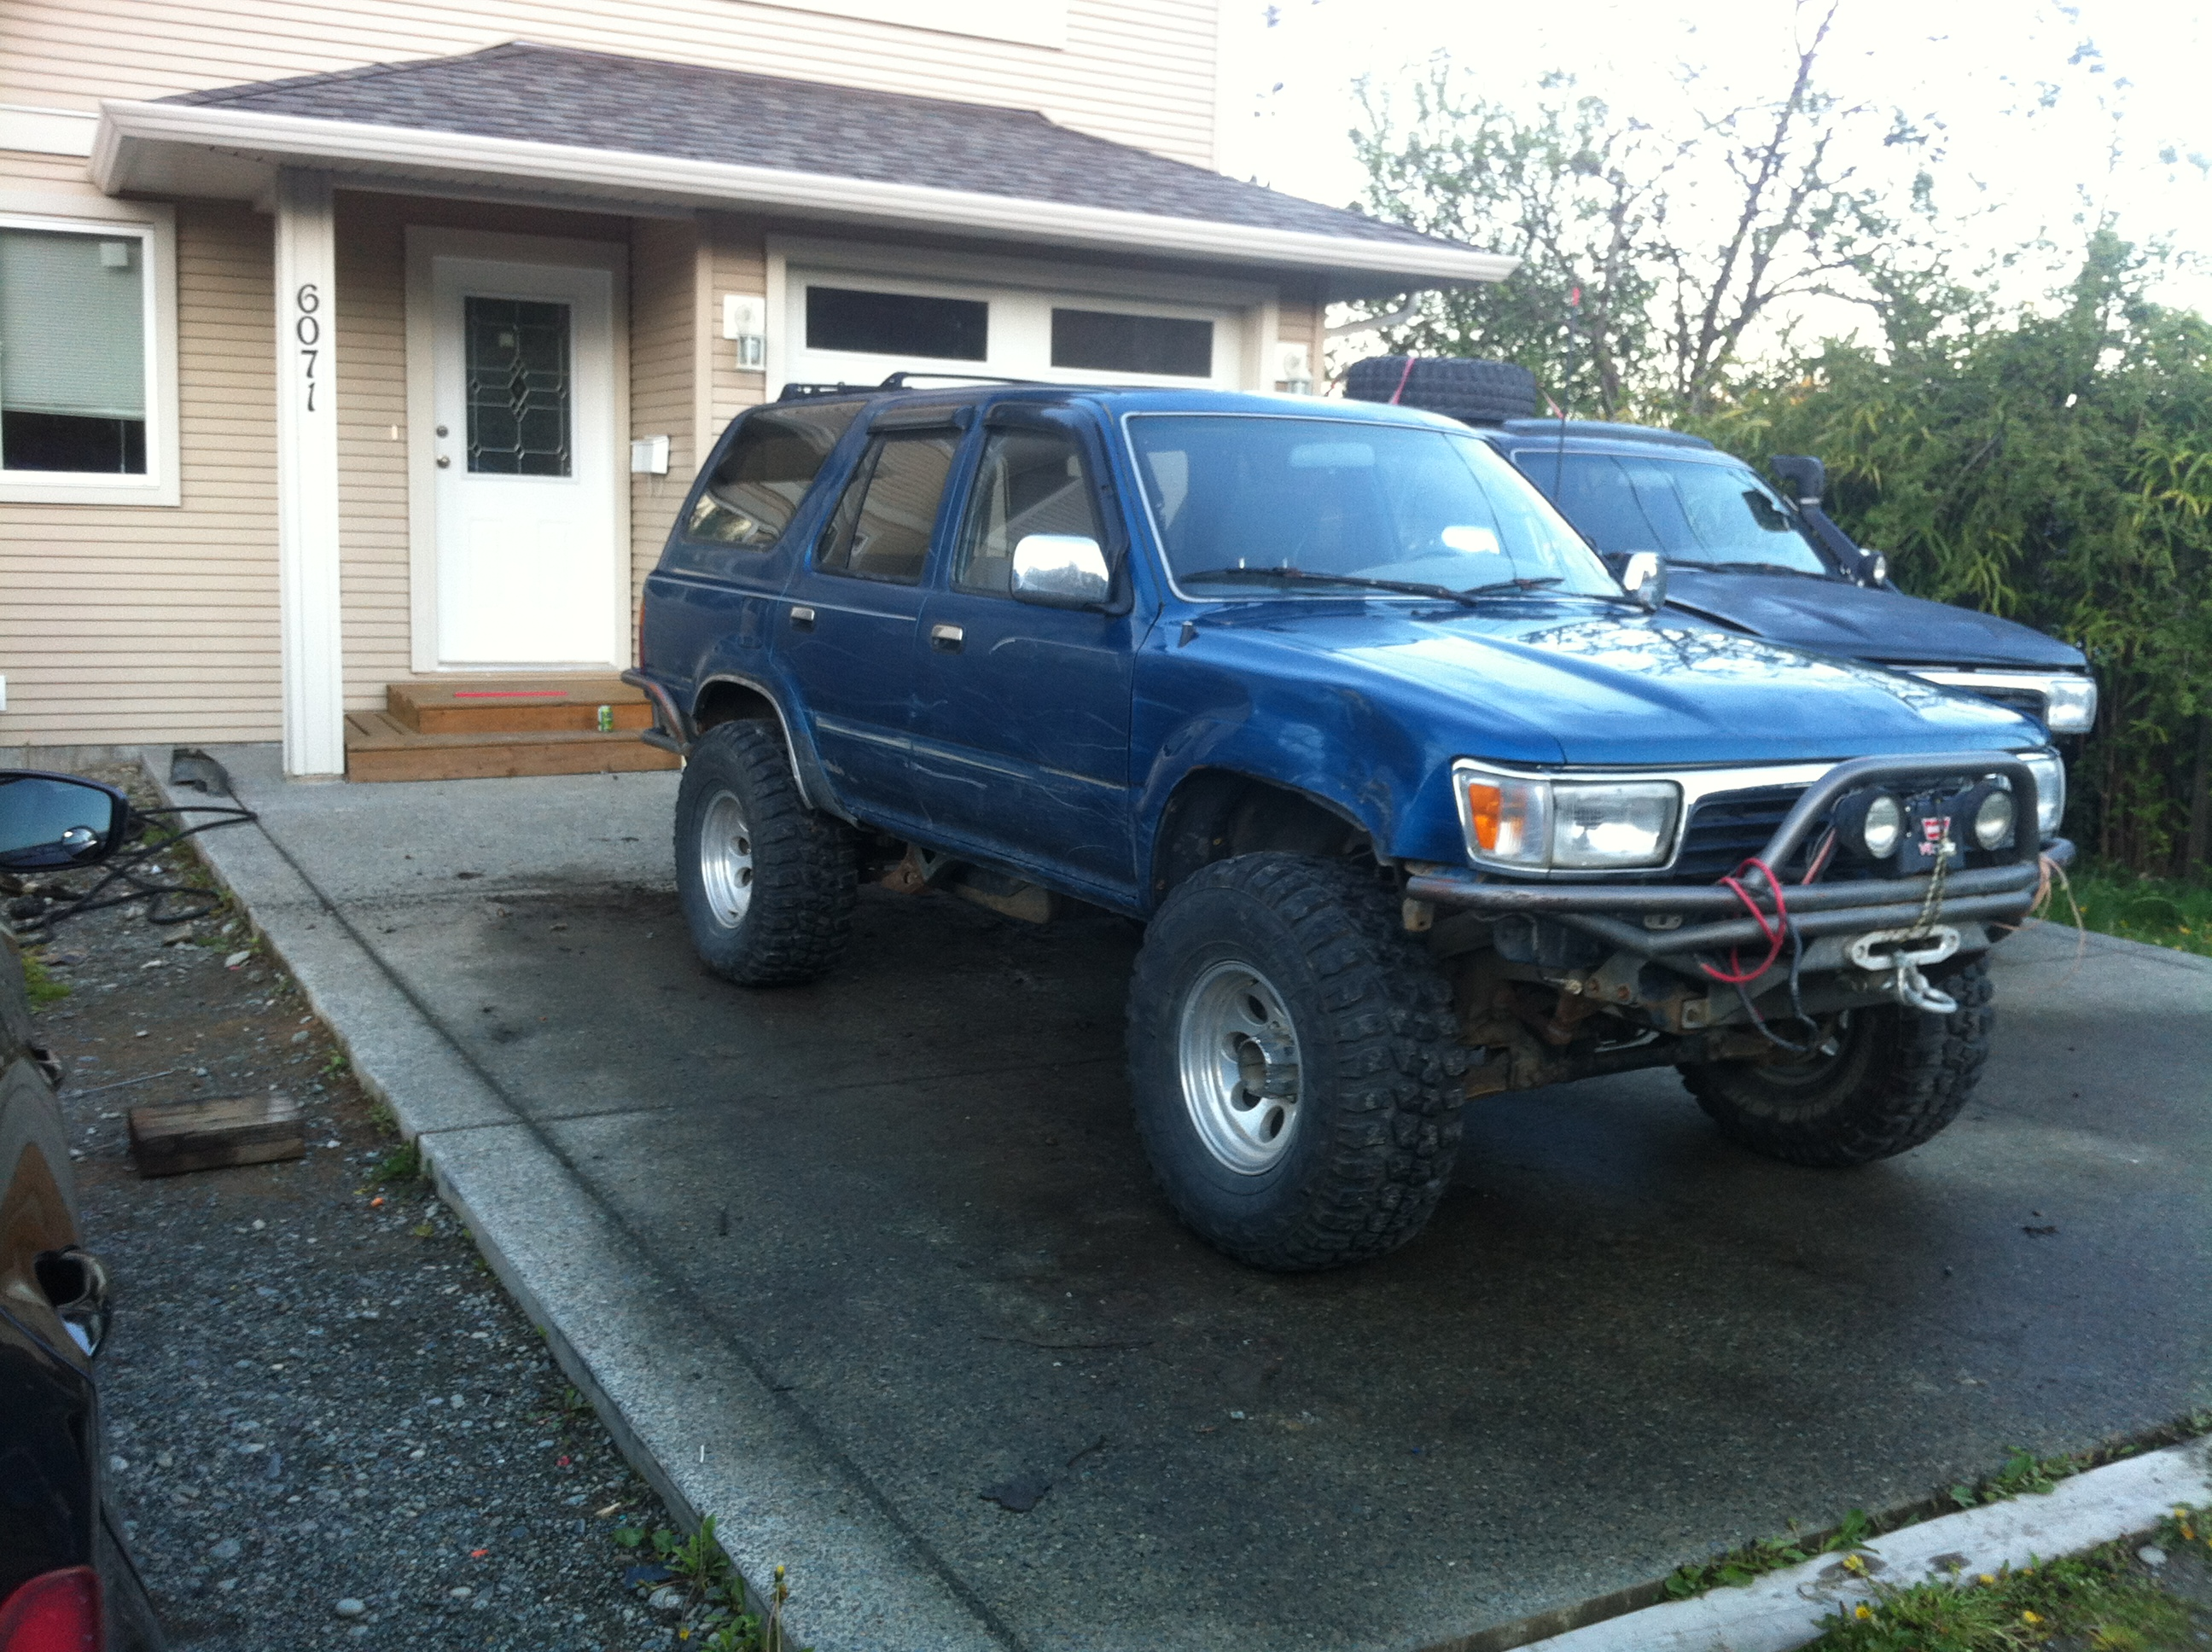 FS: 4Runner parts - whole truck, trail gear tube bumpers ...